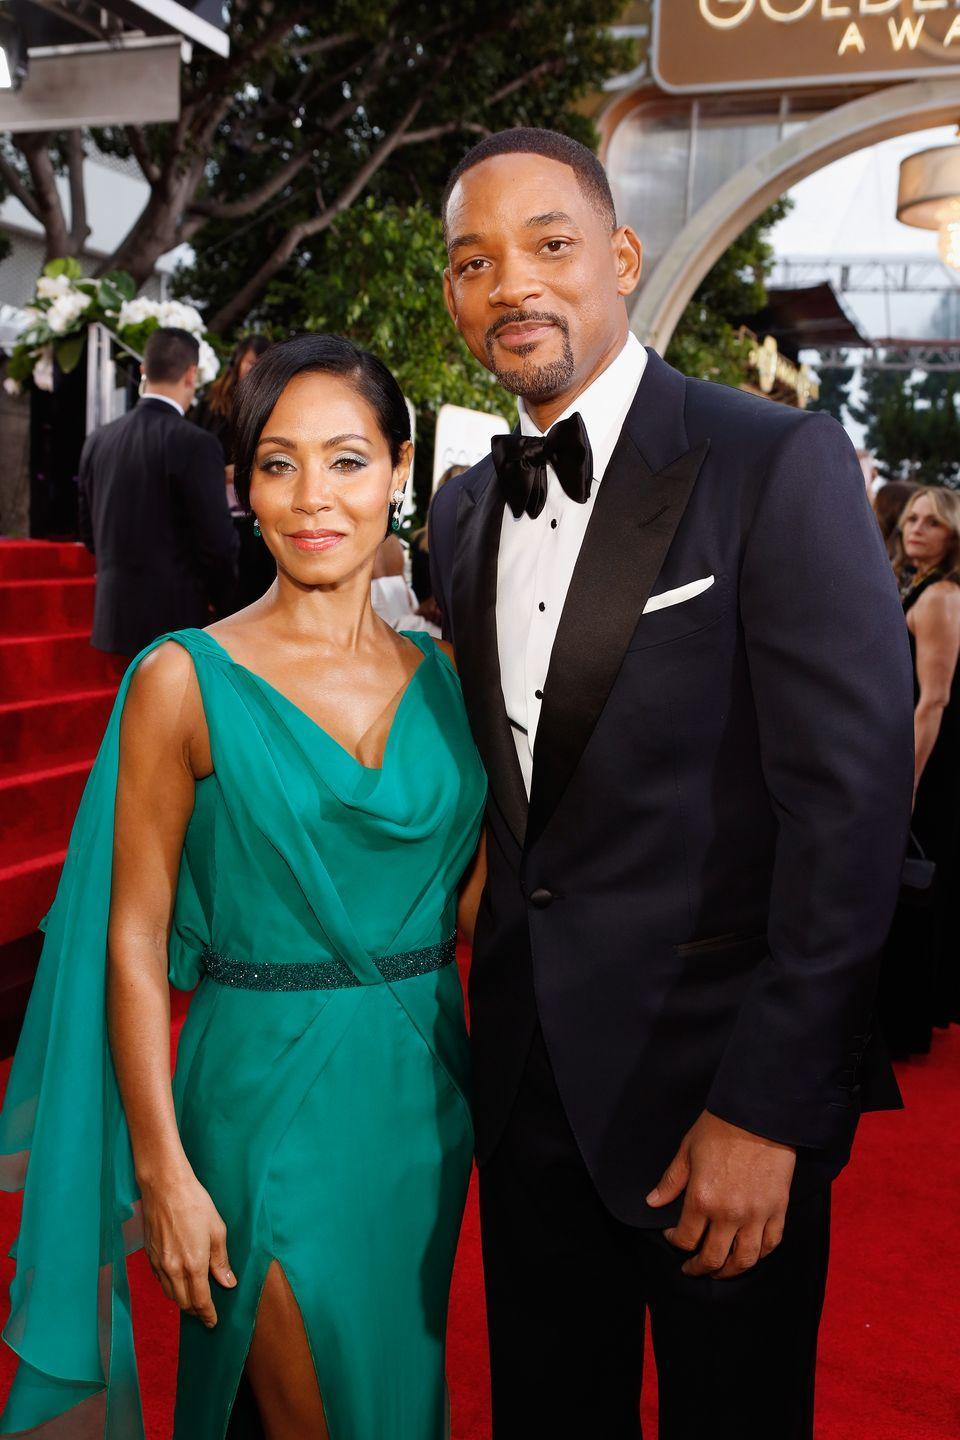 "<p>Jada auditioned for the role of Will's girlfriend on hit series, <em>The Fresh Prince of Bel-Air</em>. While that role later went to Nia Long, it didn't stop the two from becoming friends, and soon enough their friendship turned into a full-blown relationship. In 1997, the Smith's tied the knot in a swanky New Years Eve ceremony at the Cloisters Mansion in Jada's hometown of Baltimore, according to <em><a href=""https://people.com/archive/mr-smith-takes-a-bride-vol-49-no-2/"" rel=""nofollow noopener"" target=""_blank"" data-ylk=""slk:People"" class=""link rapid-noclick-resp"">People</a>.</em></p><p>In years since, the couple raised their two children, <a href=""https://www.harpersbazaar.com/culture/features/a25100553/jada-pinkett-smith-willow-smith-adrienne-banfield-jones-red-table-talk-interview-2018/"" rel=""nofollow noopener"" target=""_blank"" data-ylk=""slk:Willow"" class=""link rapid-noclick-resp"">Willow</a> and Jaden, along with co-parenting Will's first son Trey. ""We don't even say we're married anymore. We refer to ourselves as life partners,"" Smith said in 2018 during an interview for <a href=""https://www.rap-up.com/2018/07/04/will-smith-talks-new-music-20-years-of-marriage-drake/"" rel=""nofollow noopener"" target=""_blank"" data-ylk=""slk:Tidal's Rap Radar podcast"" class=""link rapid-noclick-resp"">Tidal's Rap Radar podcast</a>.</p>"